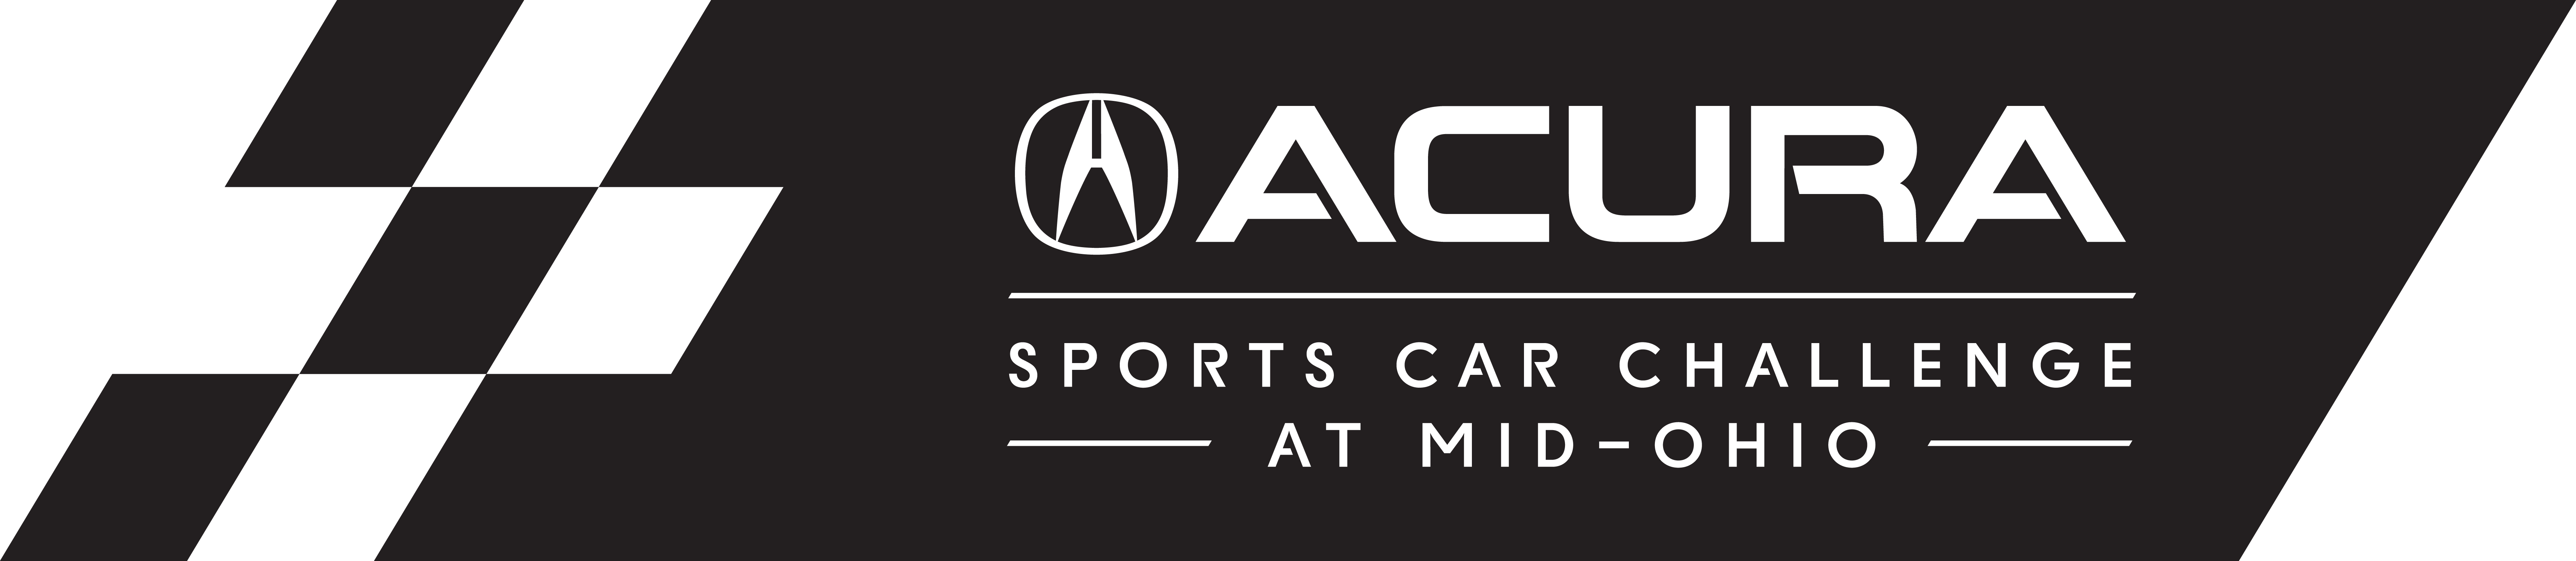 Acura Sports Car Challenge at Mid-Ohio Logo